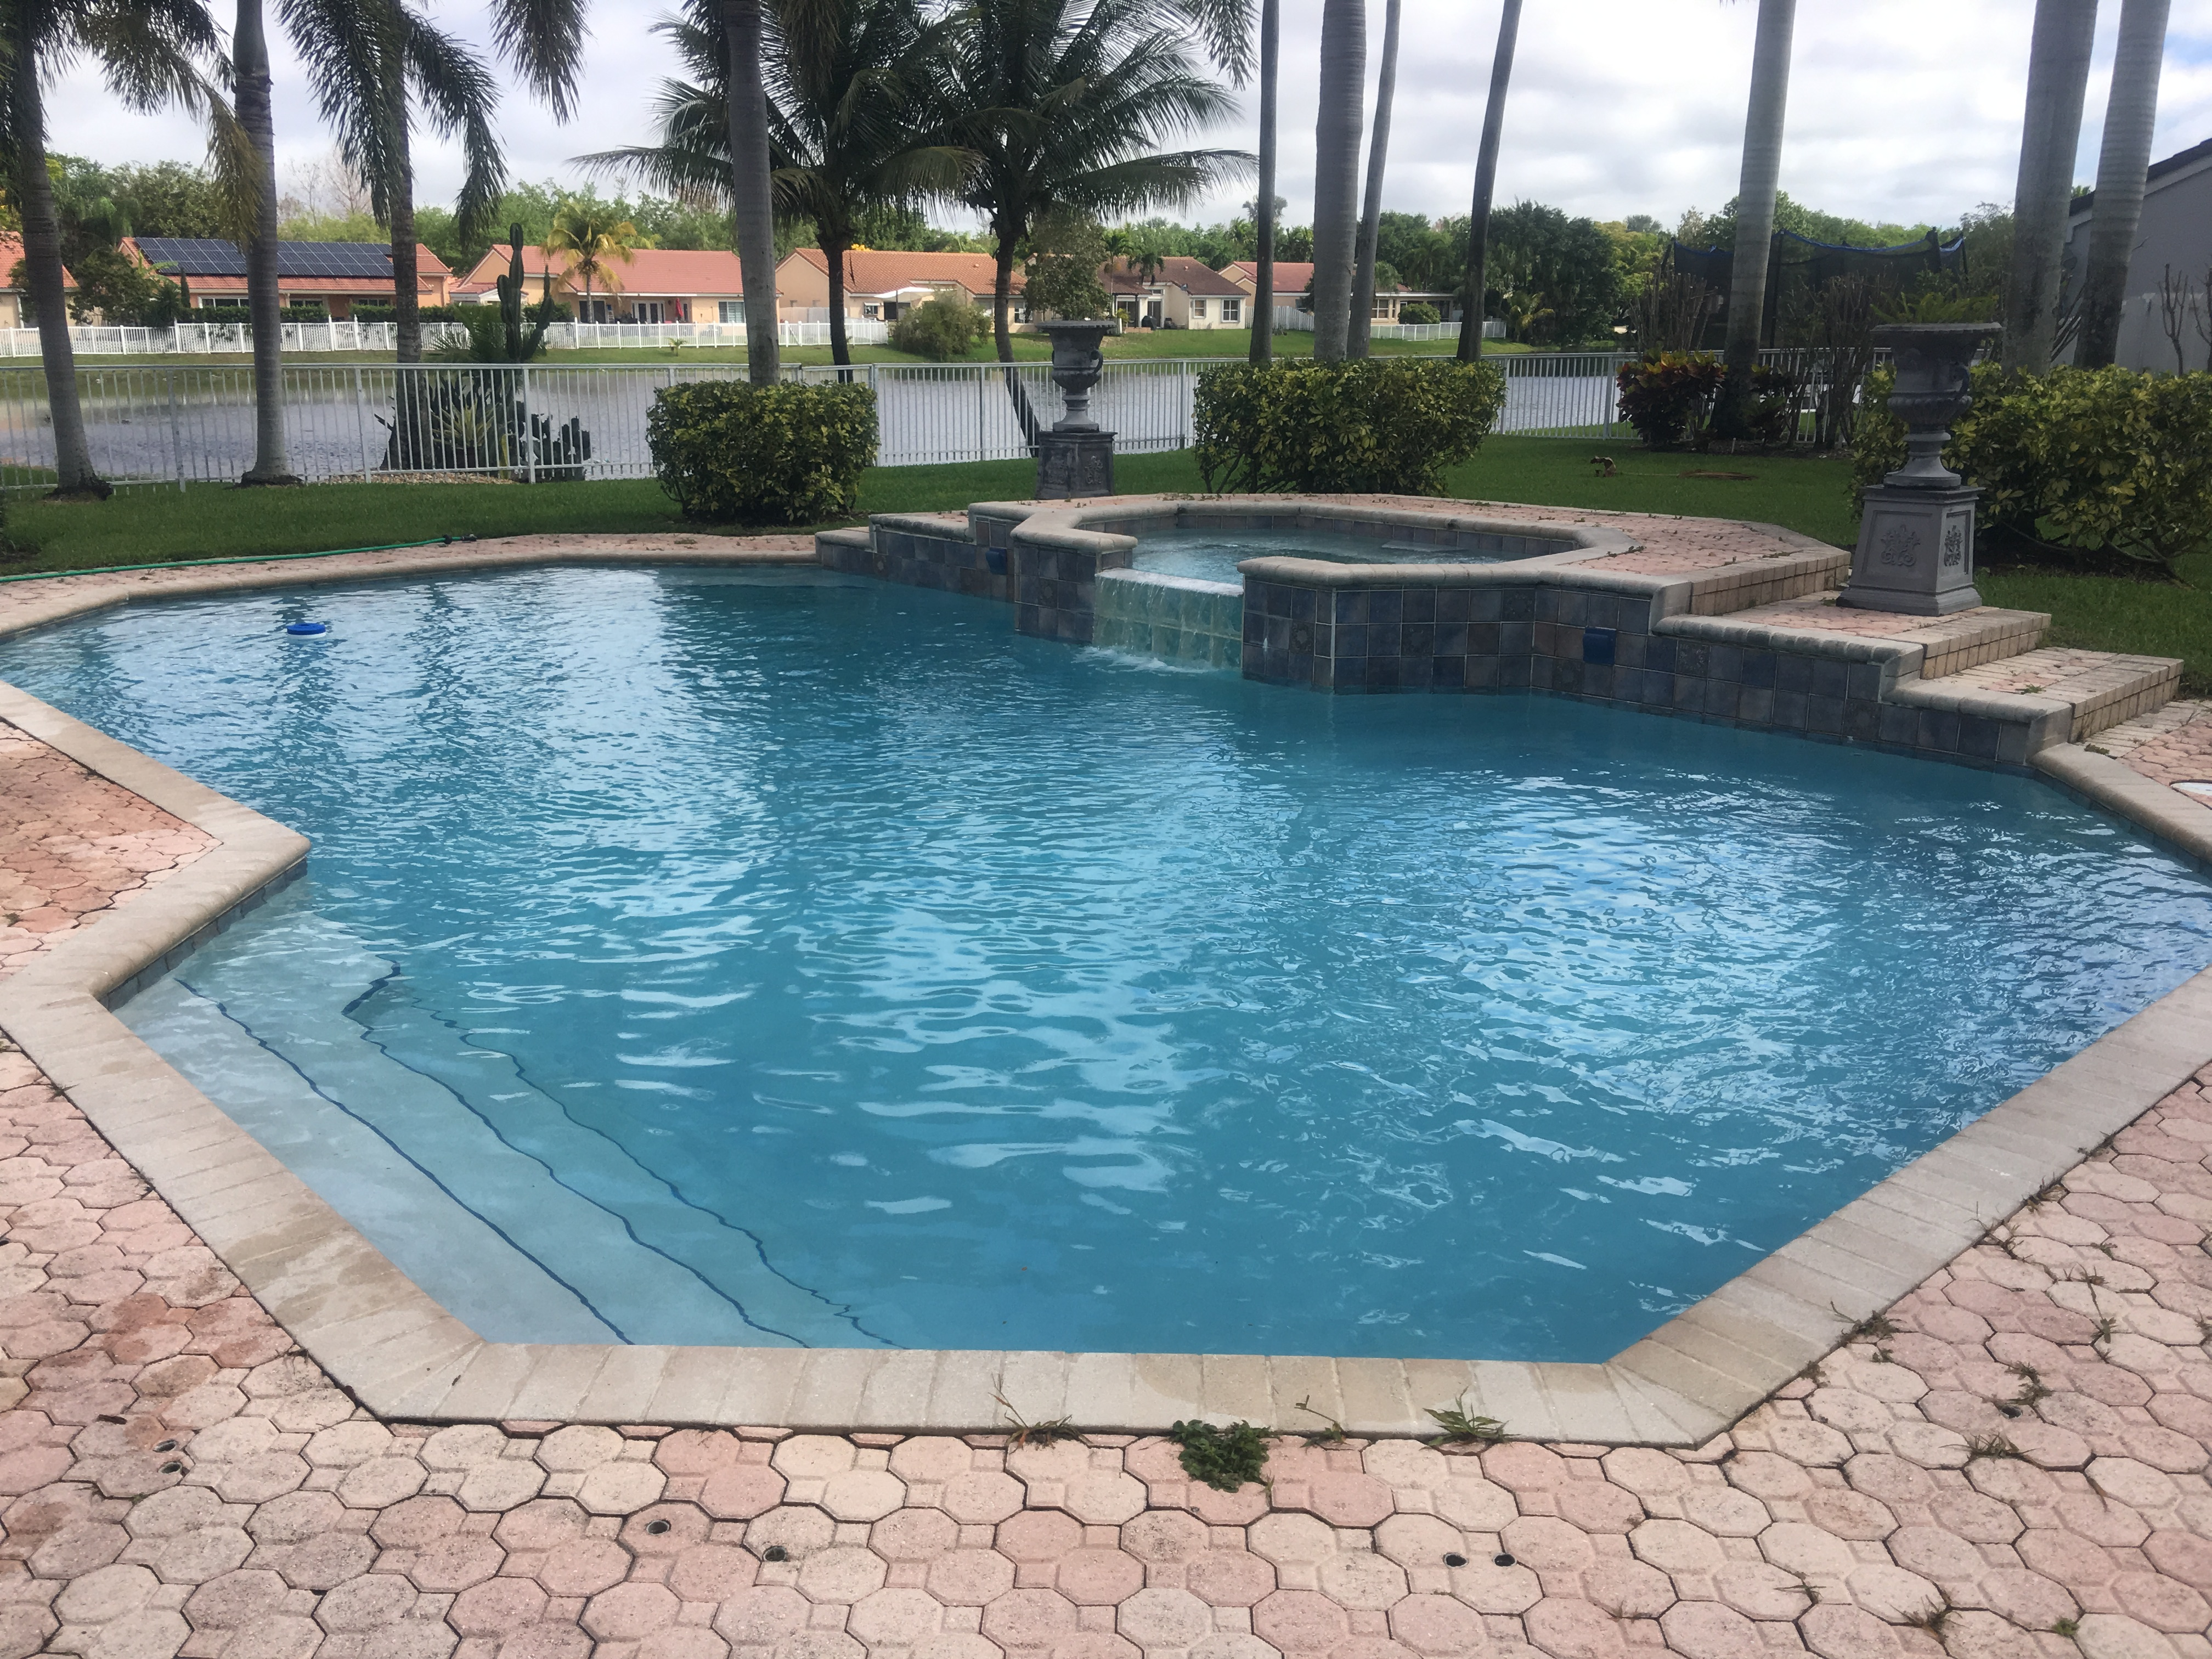 Professional pool cleaning services in South Florida